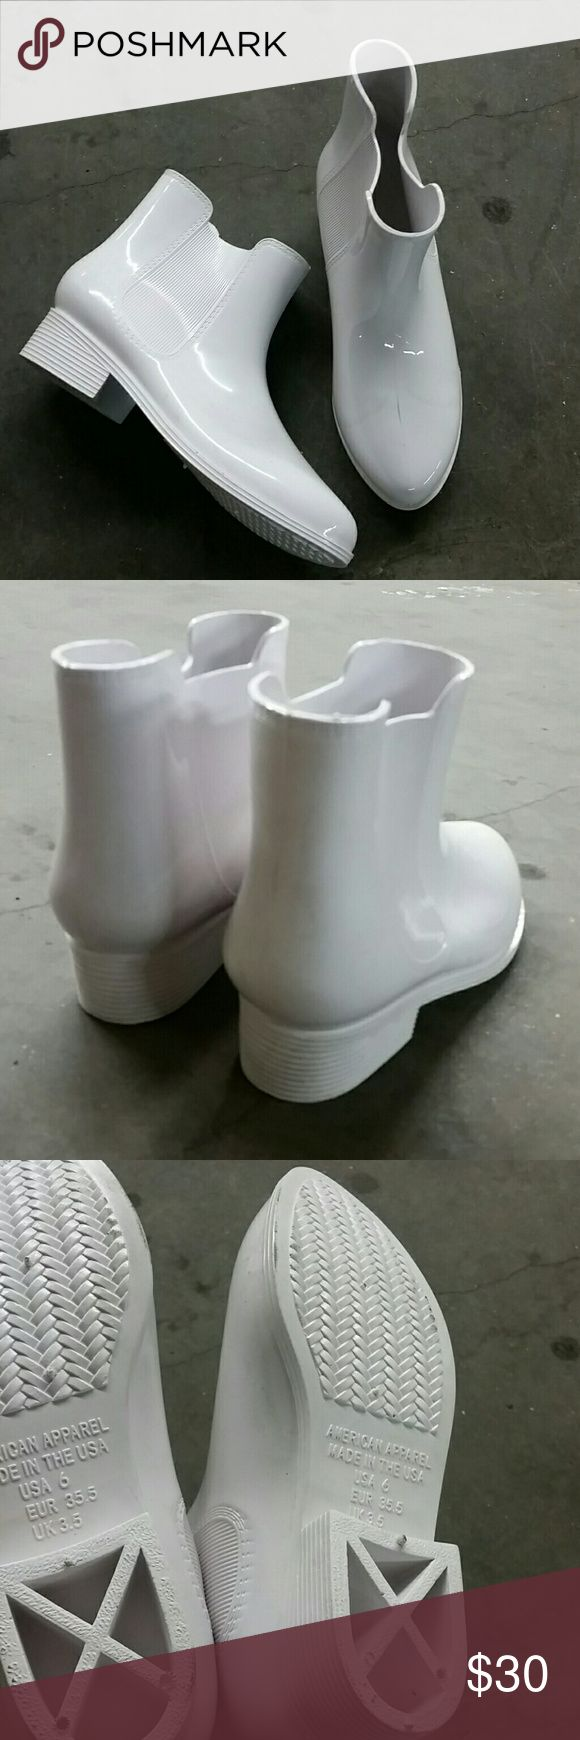 American Apparel rain boot NEW American Apparel rain boot , a little above the ankle. Extremely comfortable!  Super cute! Never worn! Made in USA / No trades /color is white American Apparel Shoes Ankle Boots & Booties